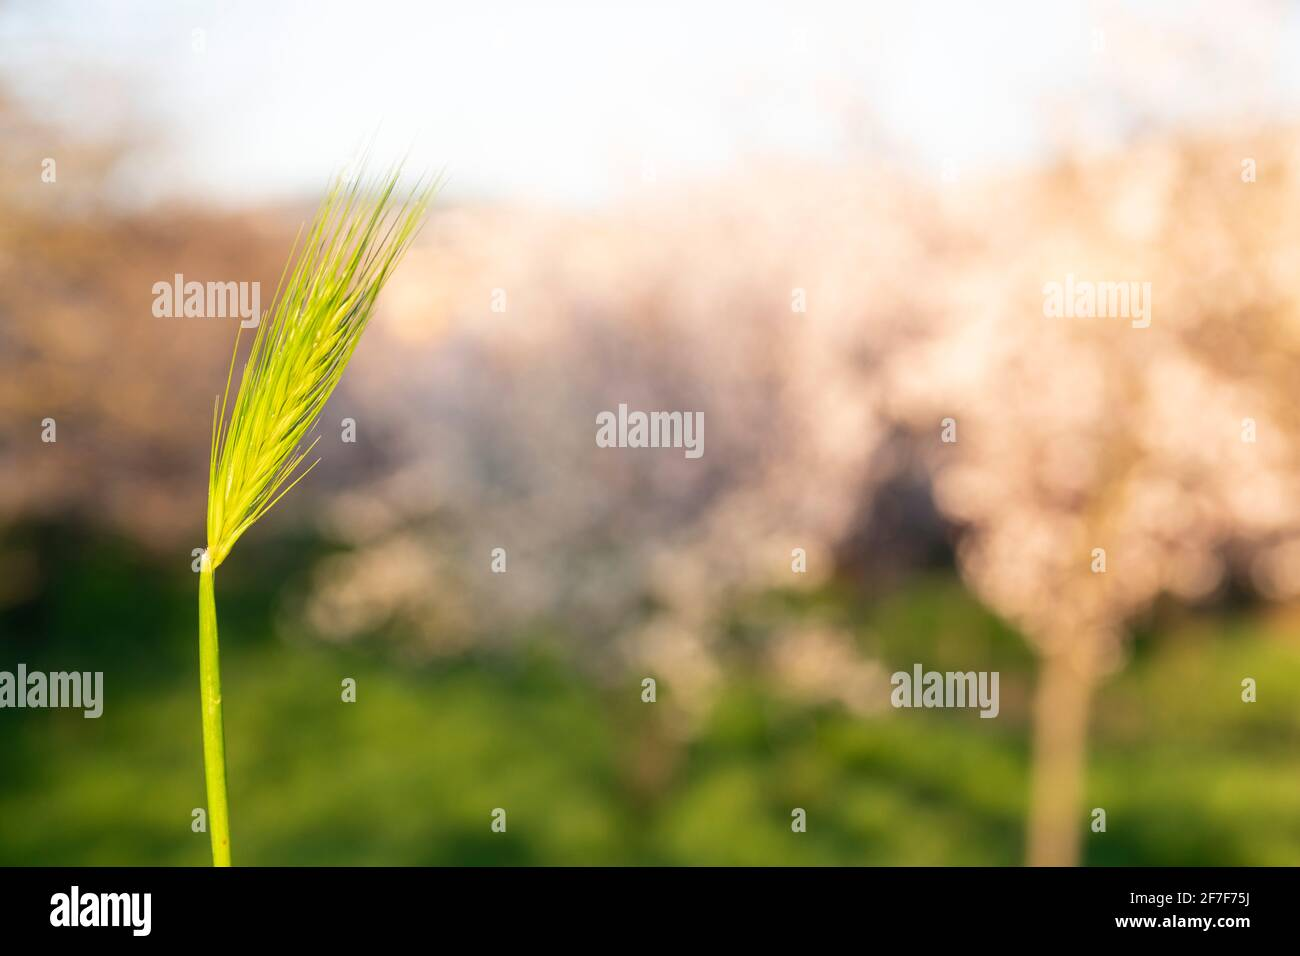 Springtime and growth concept: Side view and close up on green grass on a sunny day. Sun beam shining through leaves. Growth in economy. Day light. Stock Photo